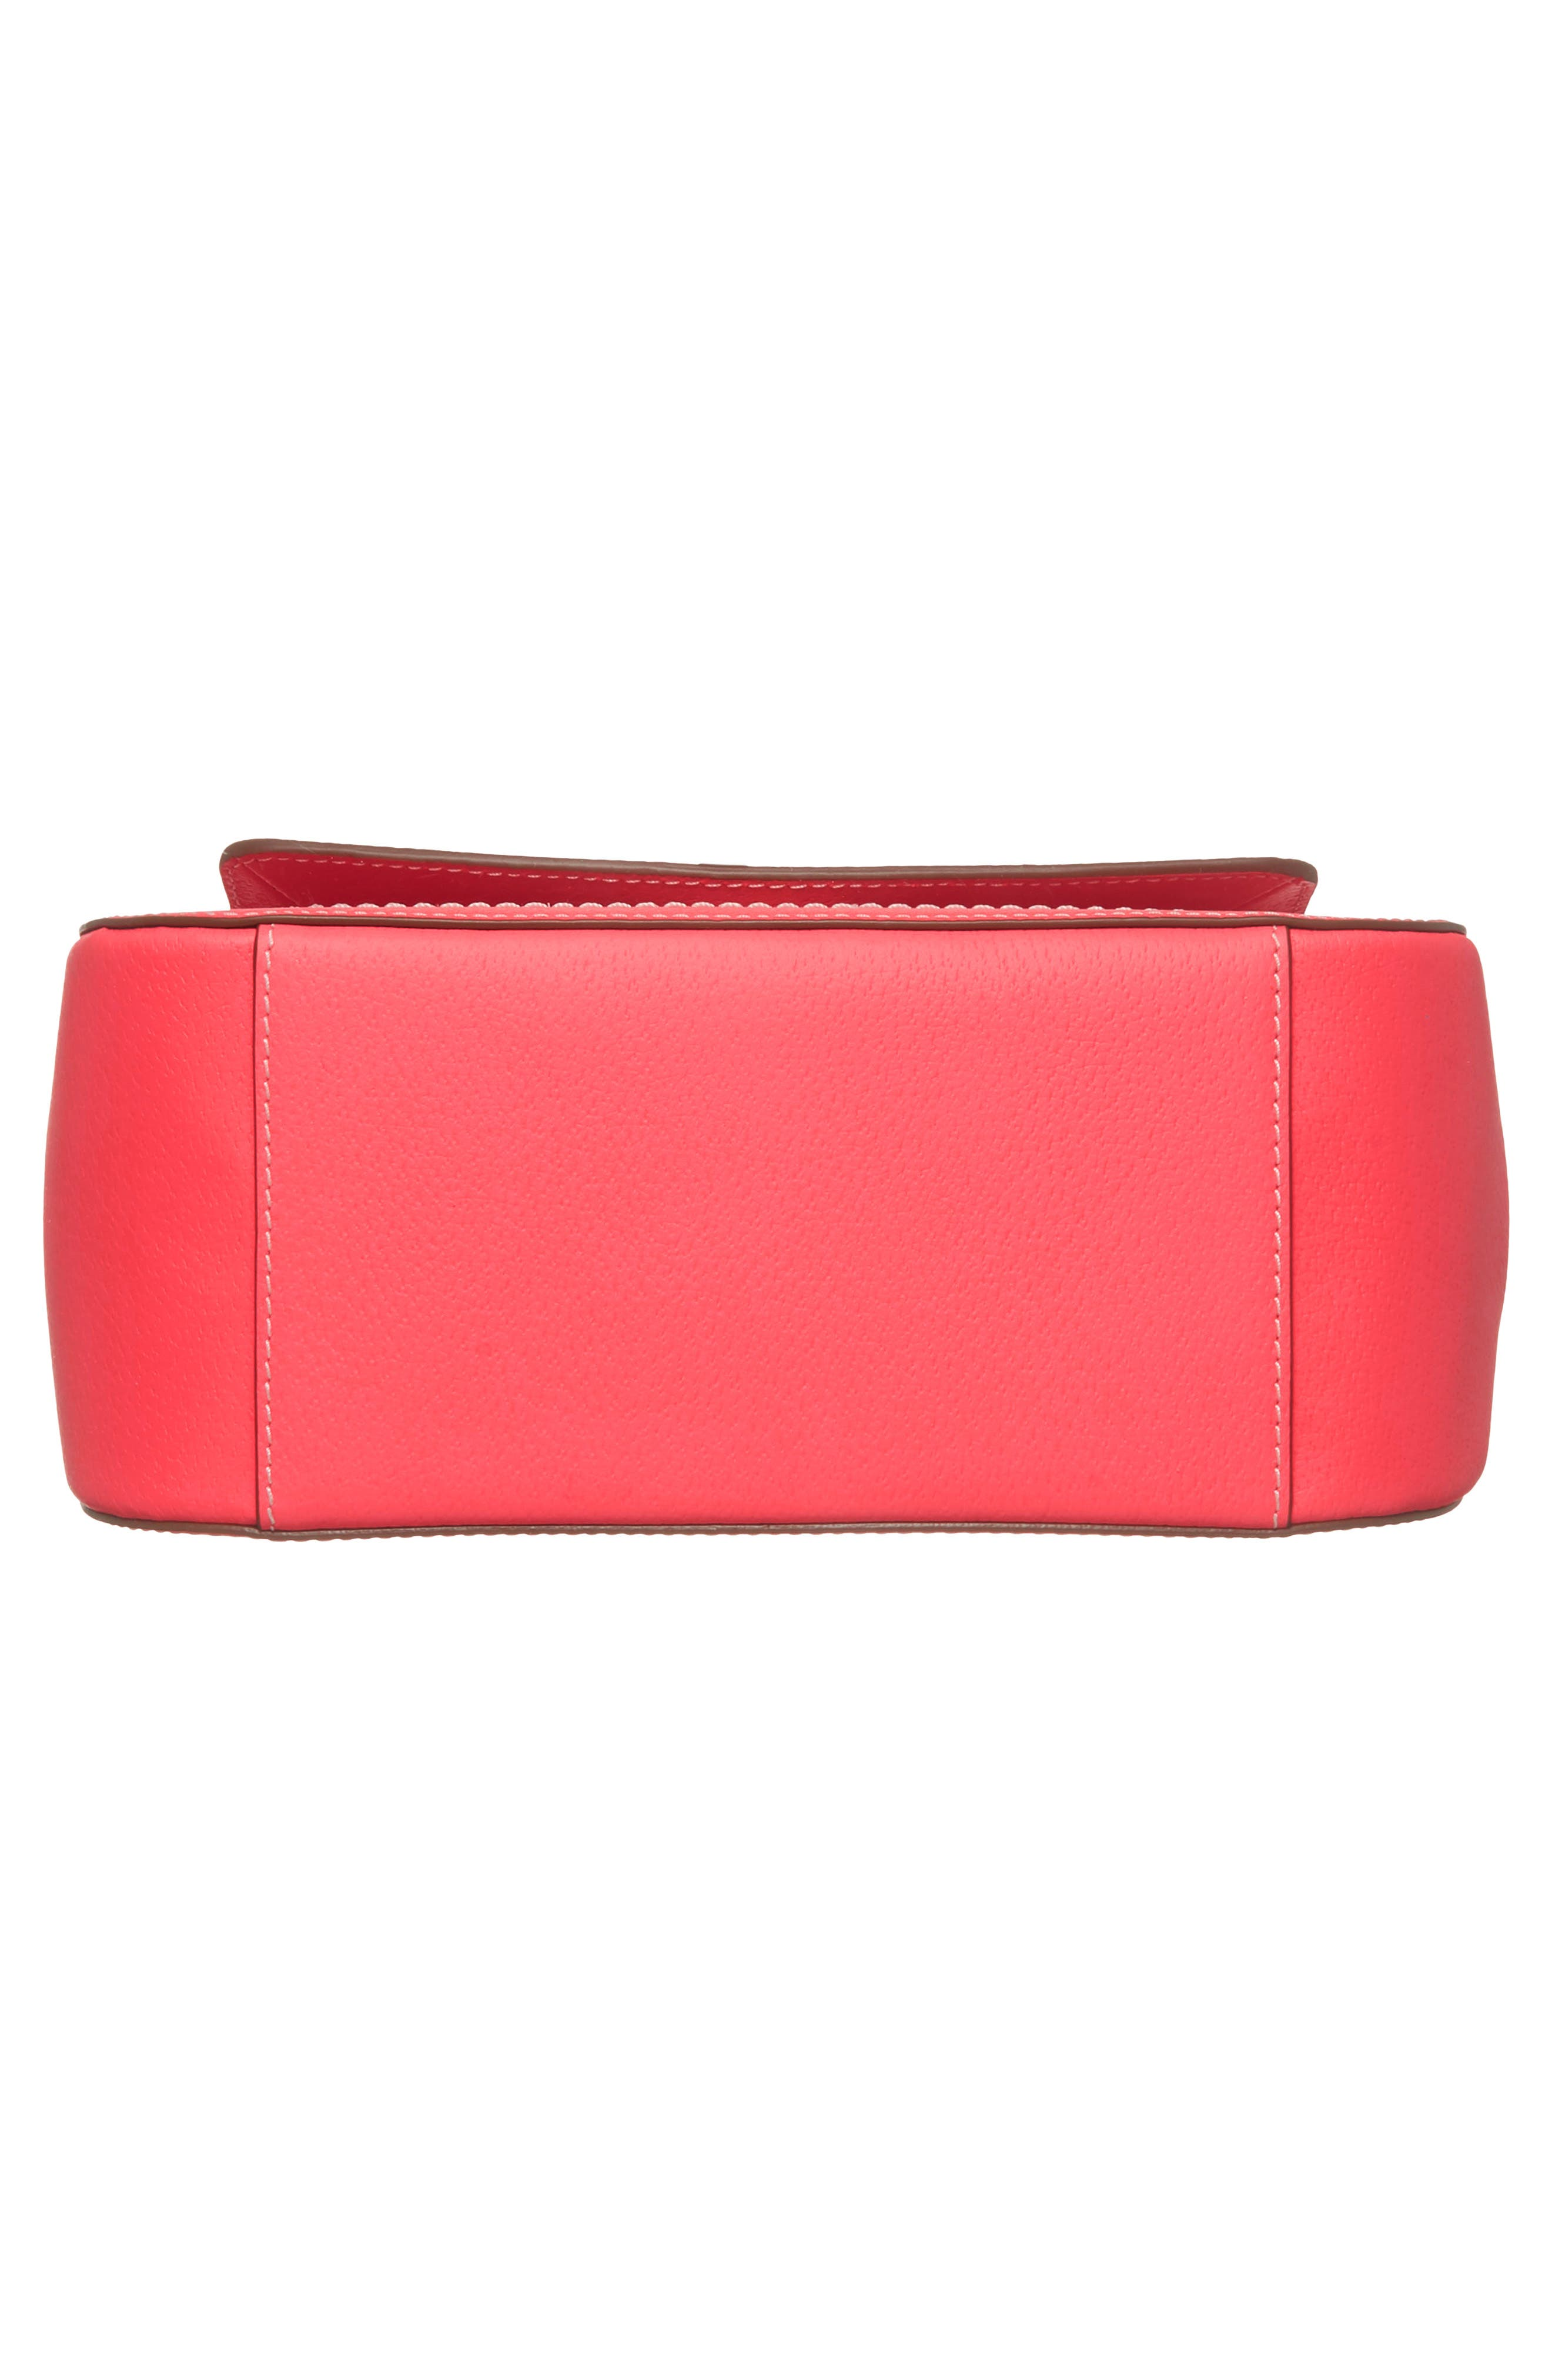 thompson street - justina leather satchel,                             Alternate thumbnail 6, color,                             Bright Flamingo